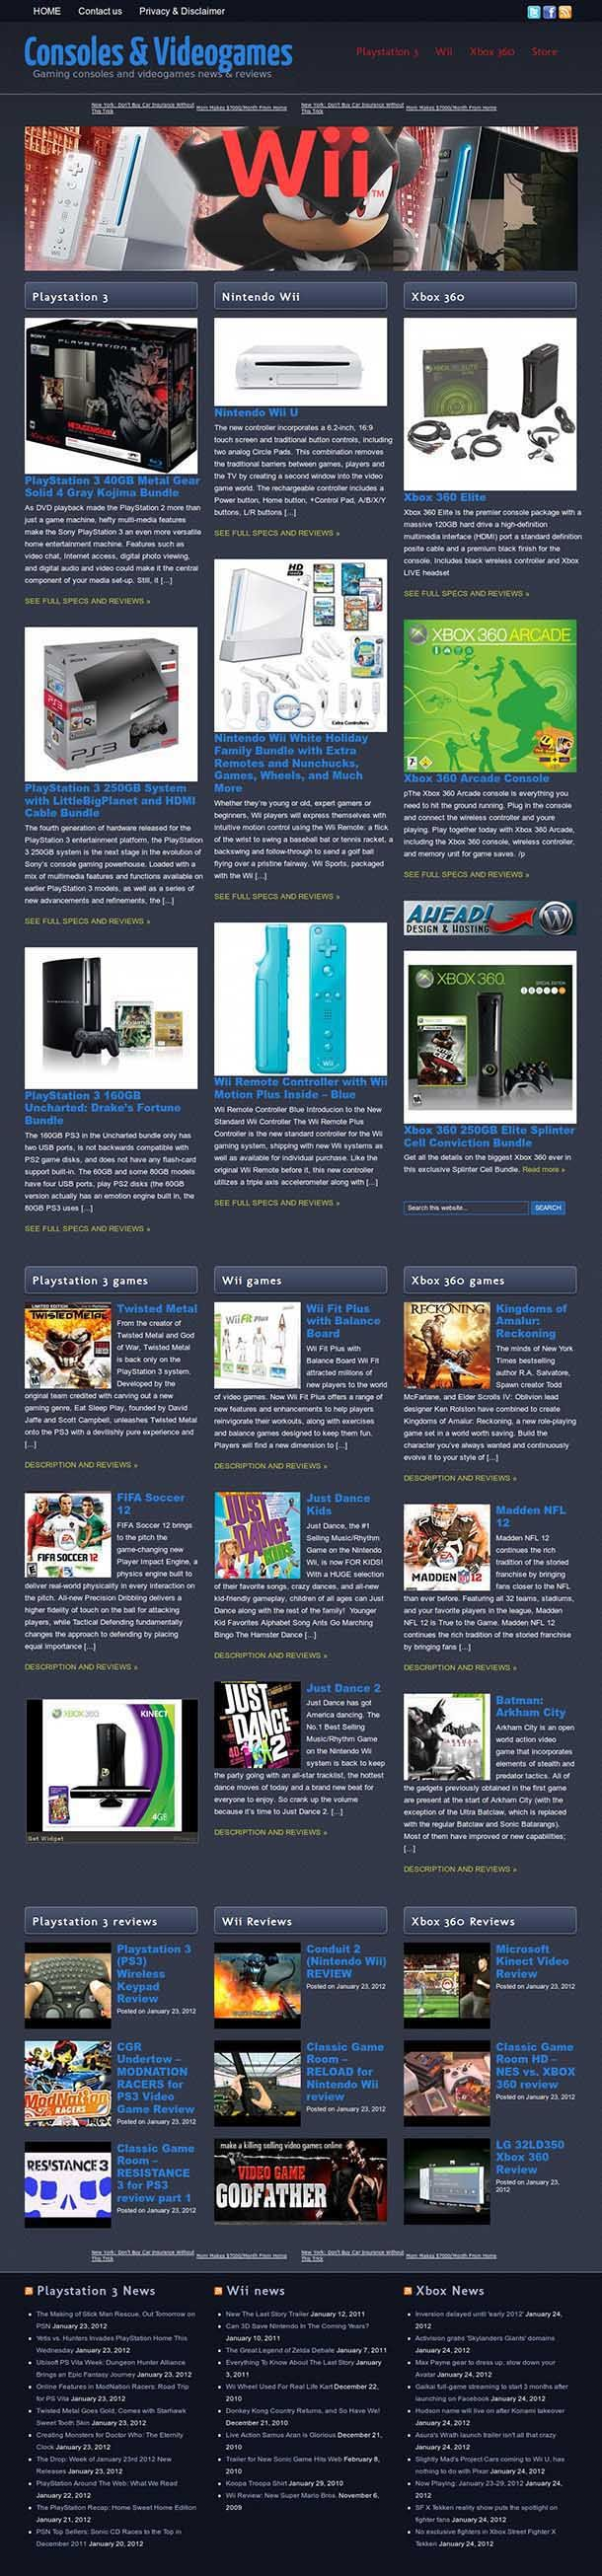 best 25 playstation for sale ideas on pinterest xbox for sale